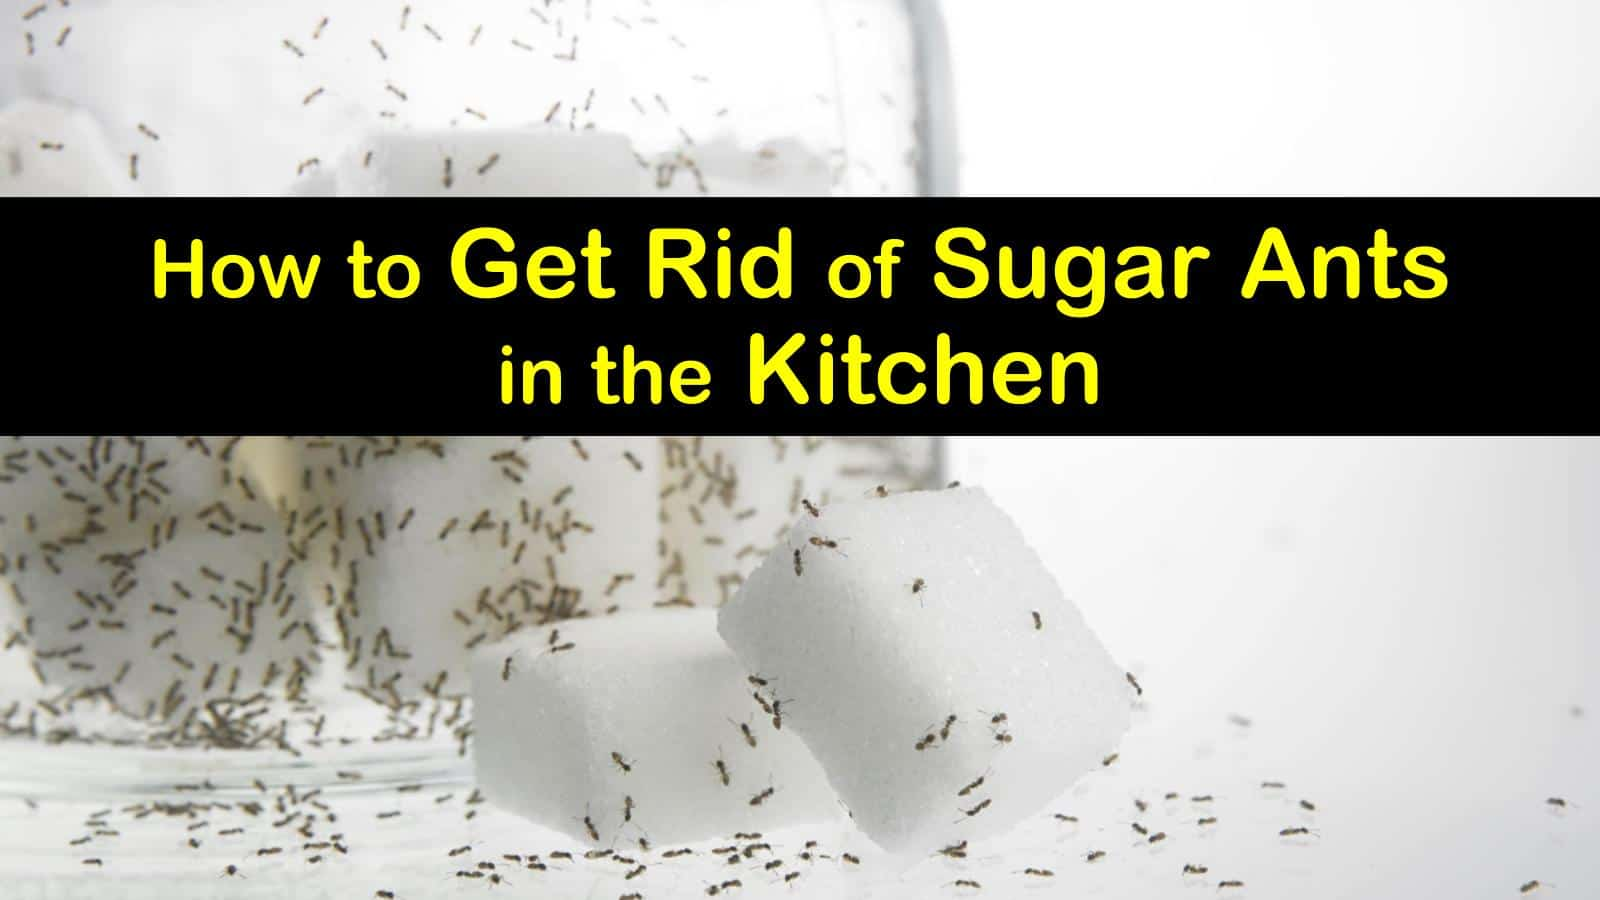 How to Get Rid of Sugar Ants in the Kitchen